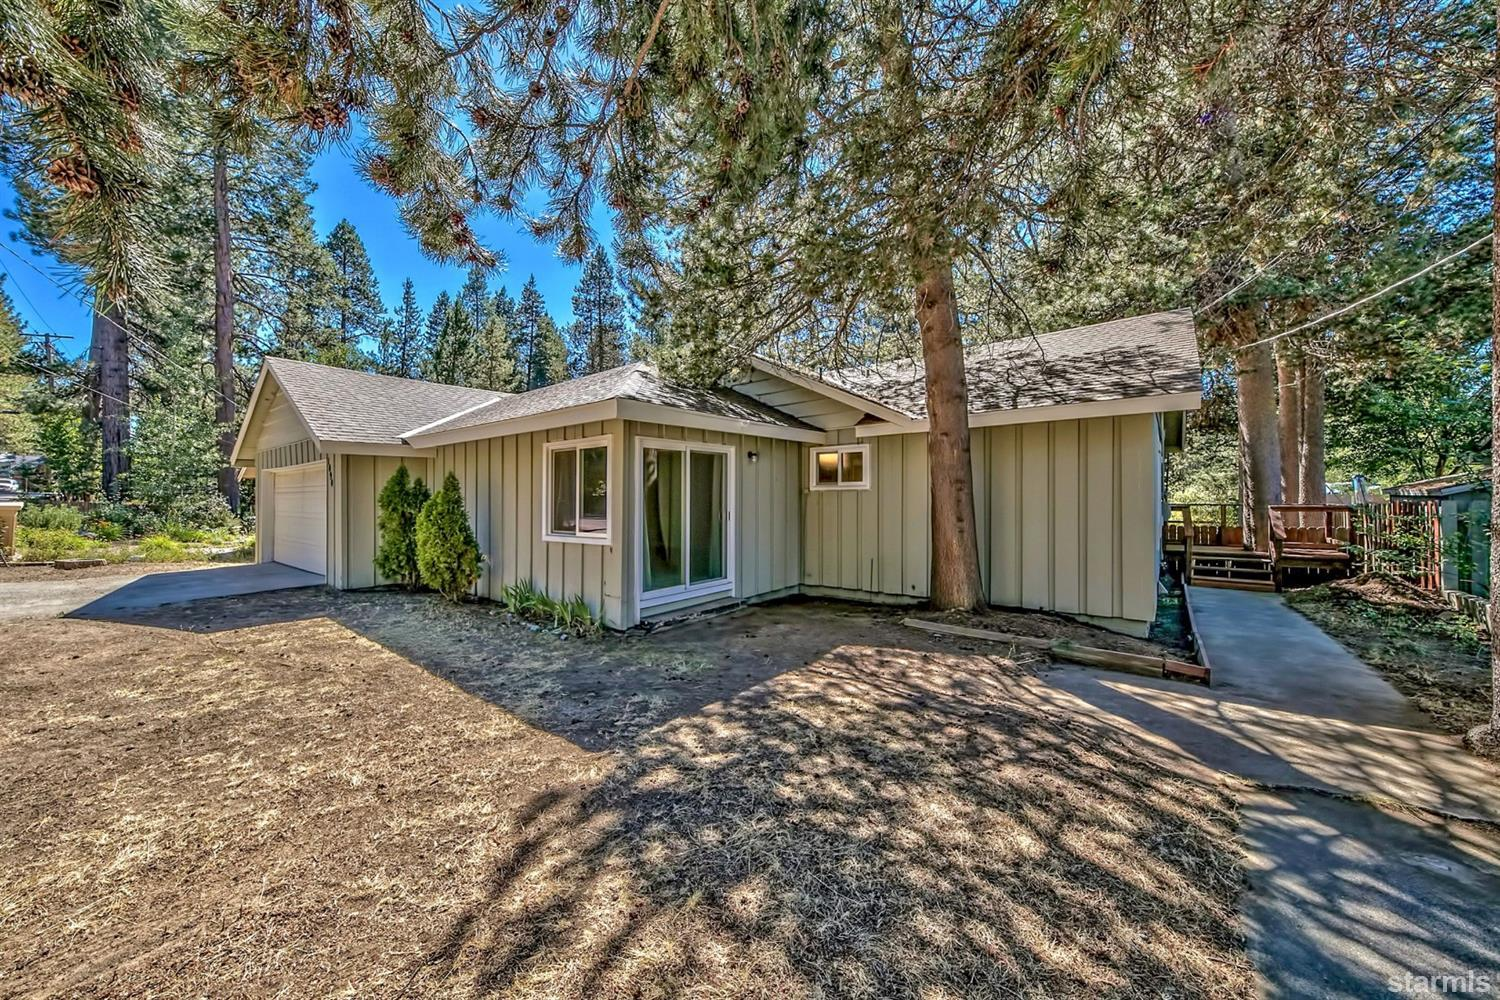 Fairway Avenue, SOUTH LAKE TAHOE, CA 96150